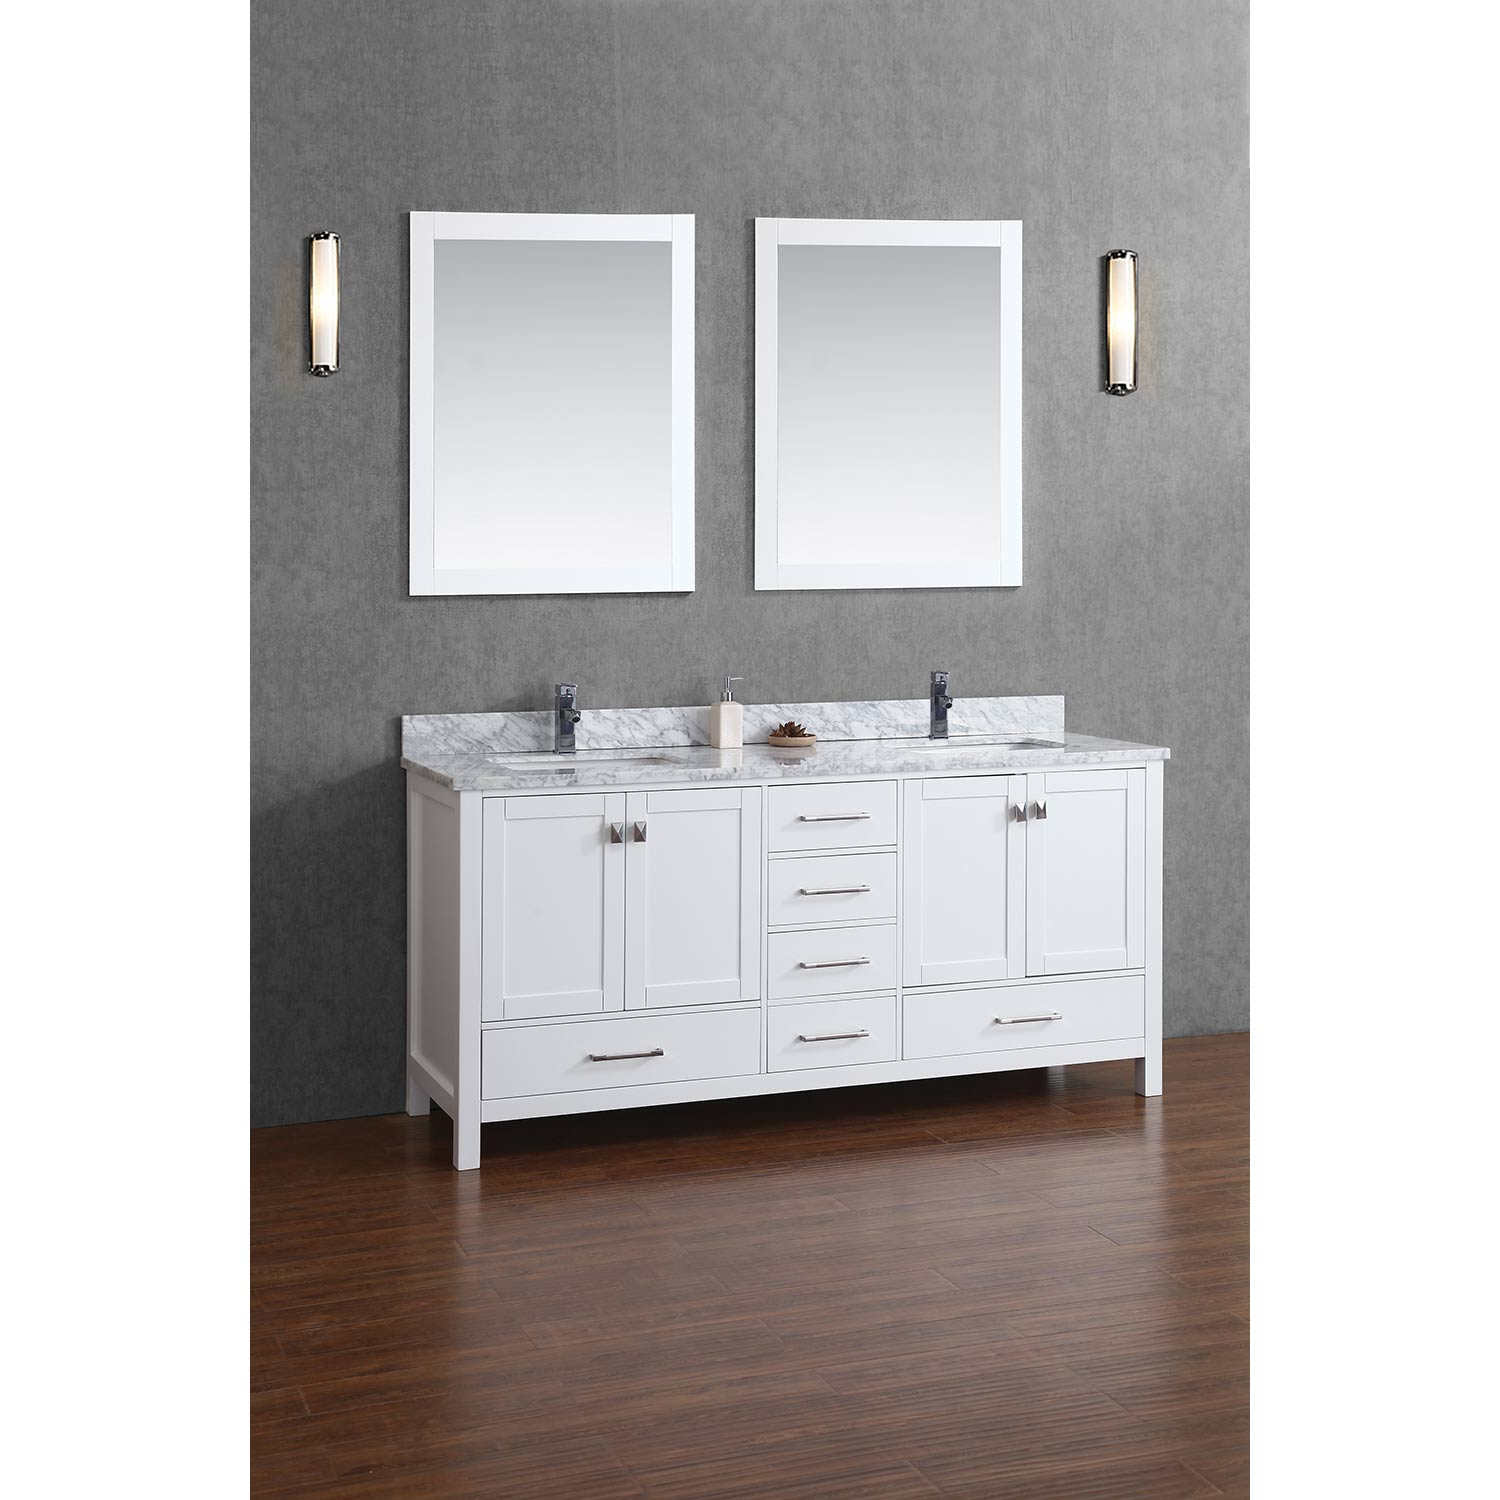 buy vincent 72 inch solid wood double bathroom vanity in white hm 13001 72 wmsq wt